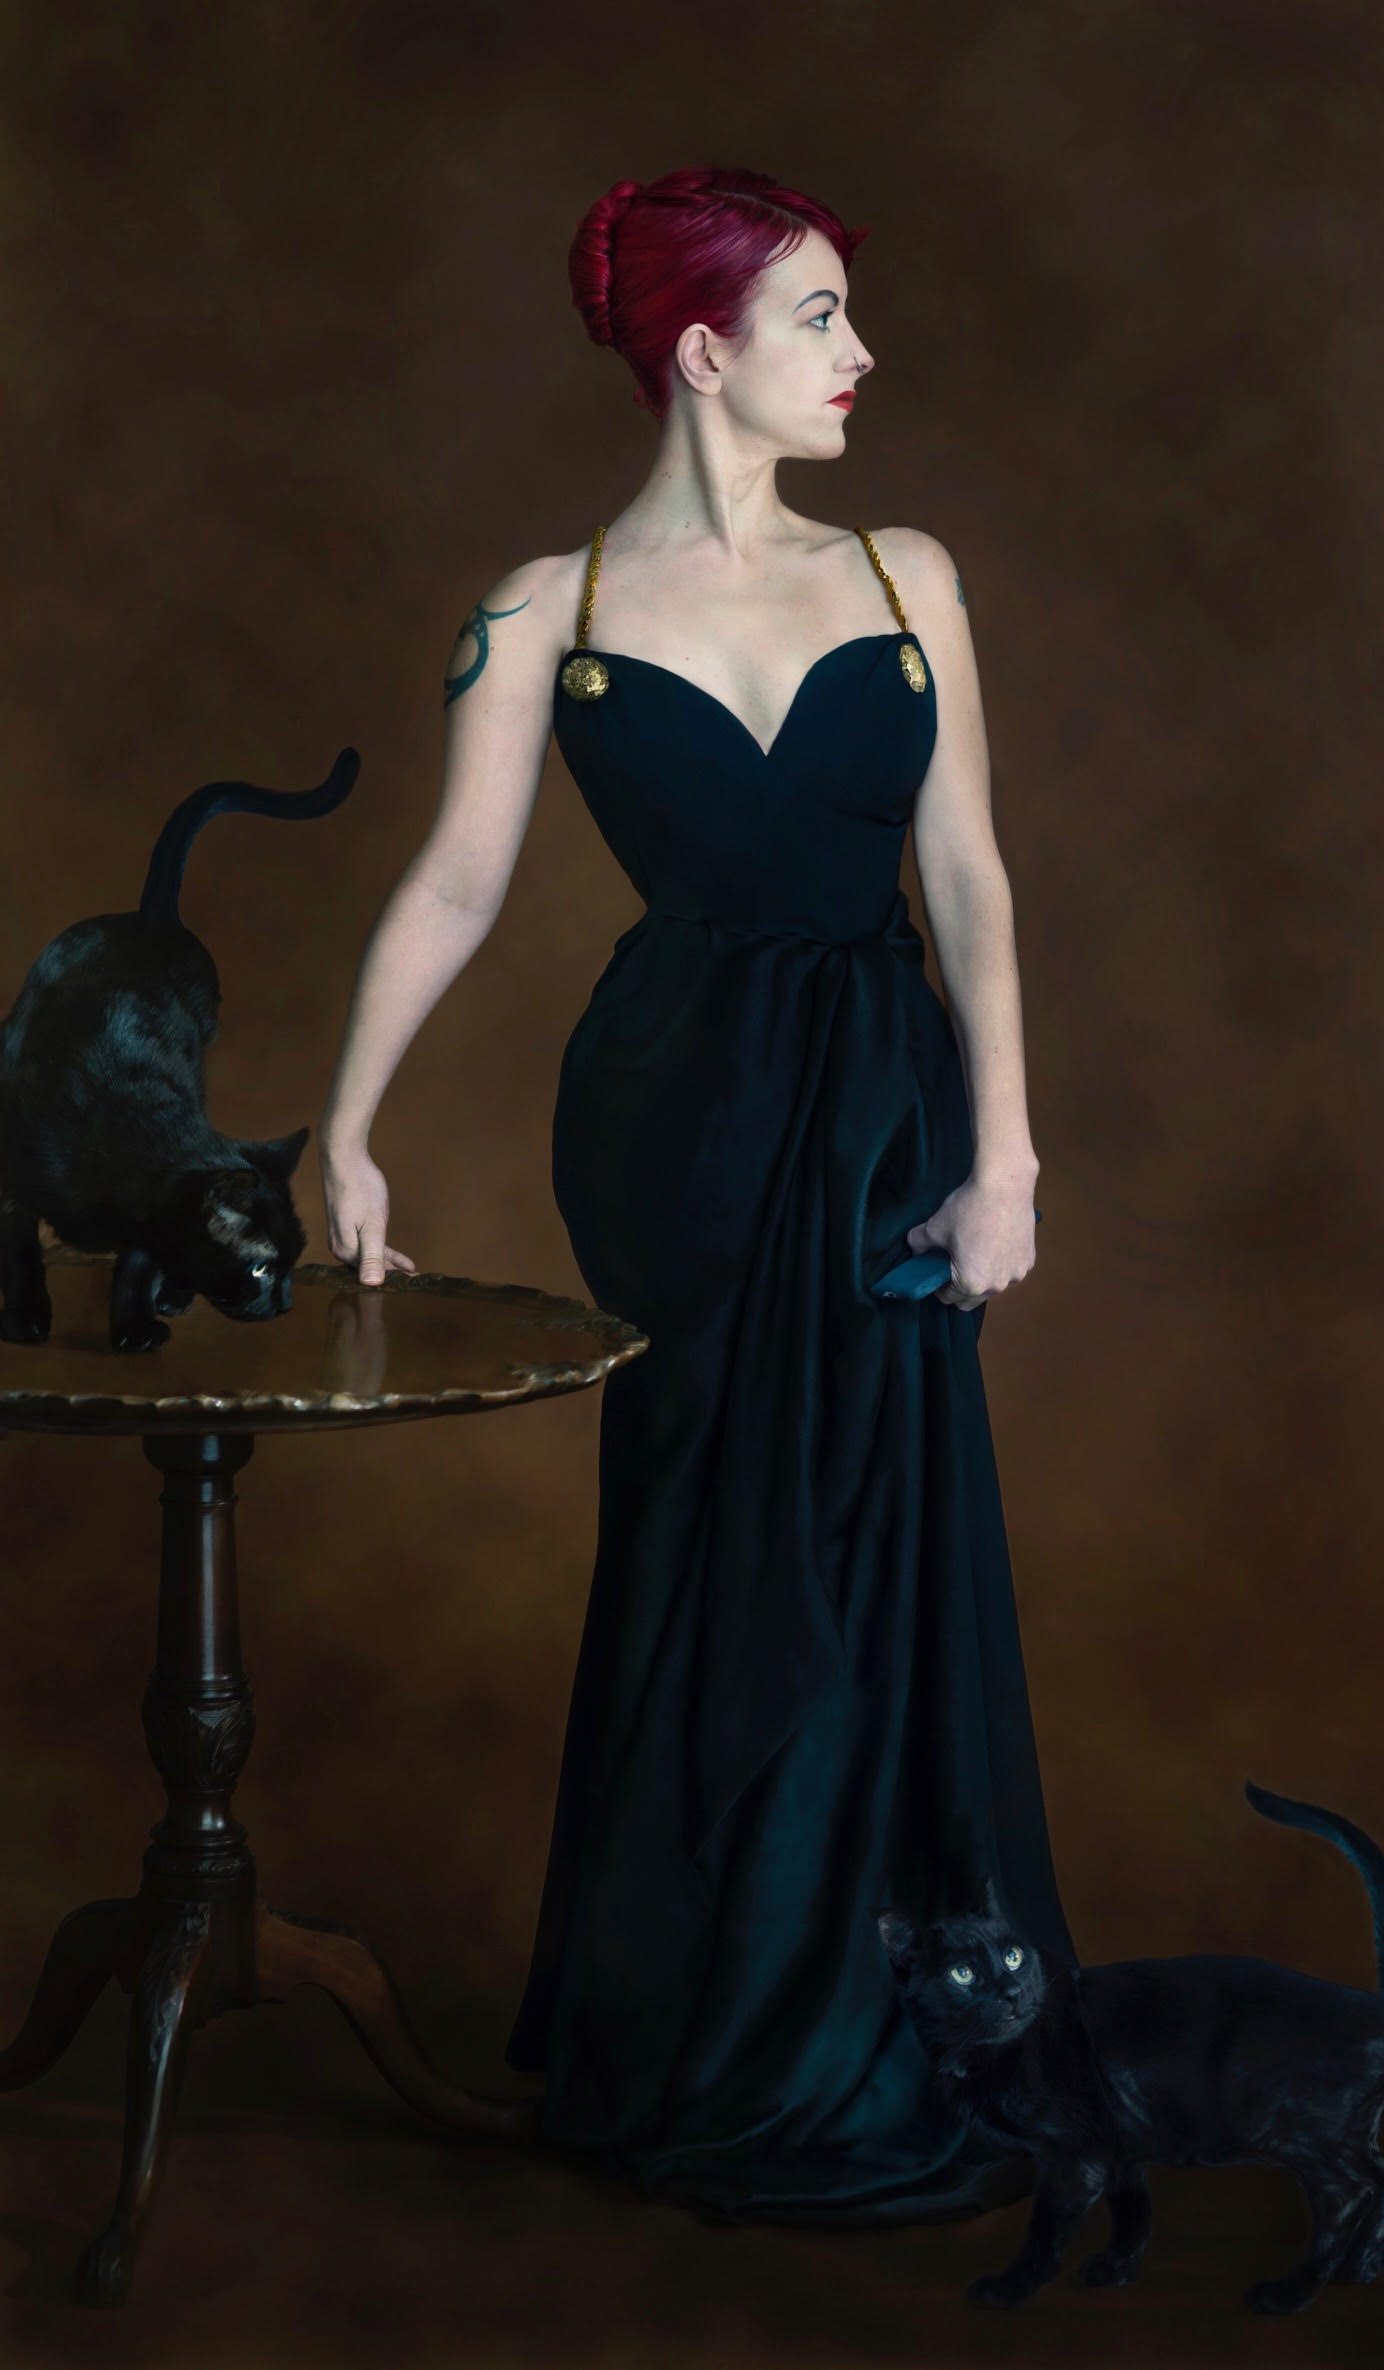 """Chrystyne as Madame X for the """"Cat Women"""" series.  Photographer: Brooke Hummer"""